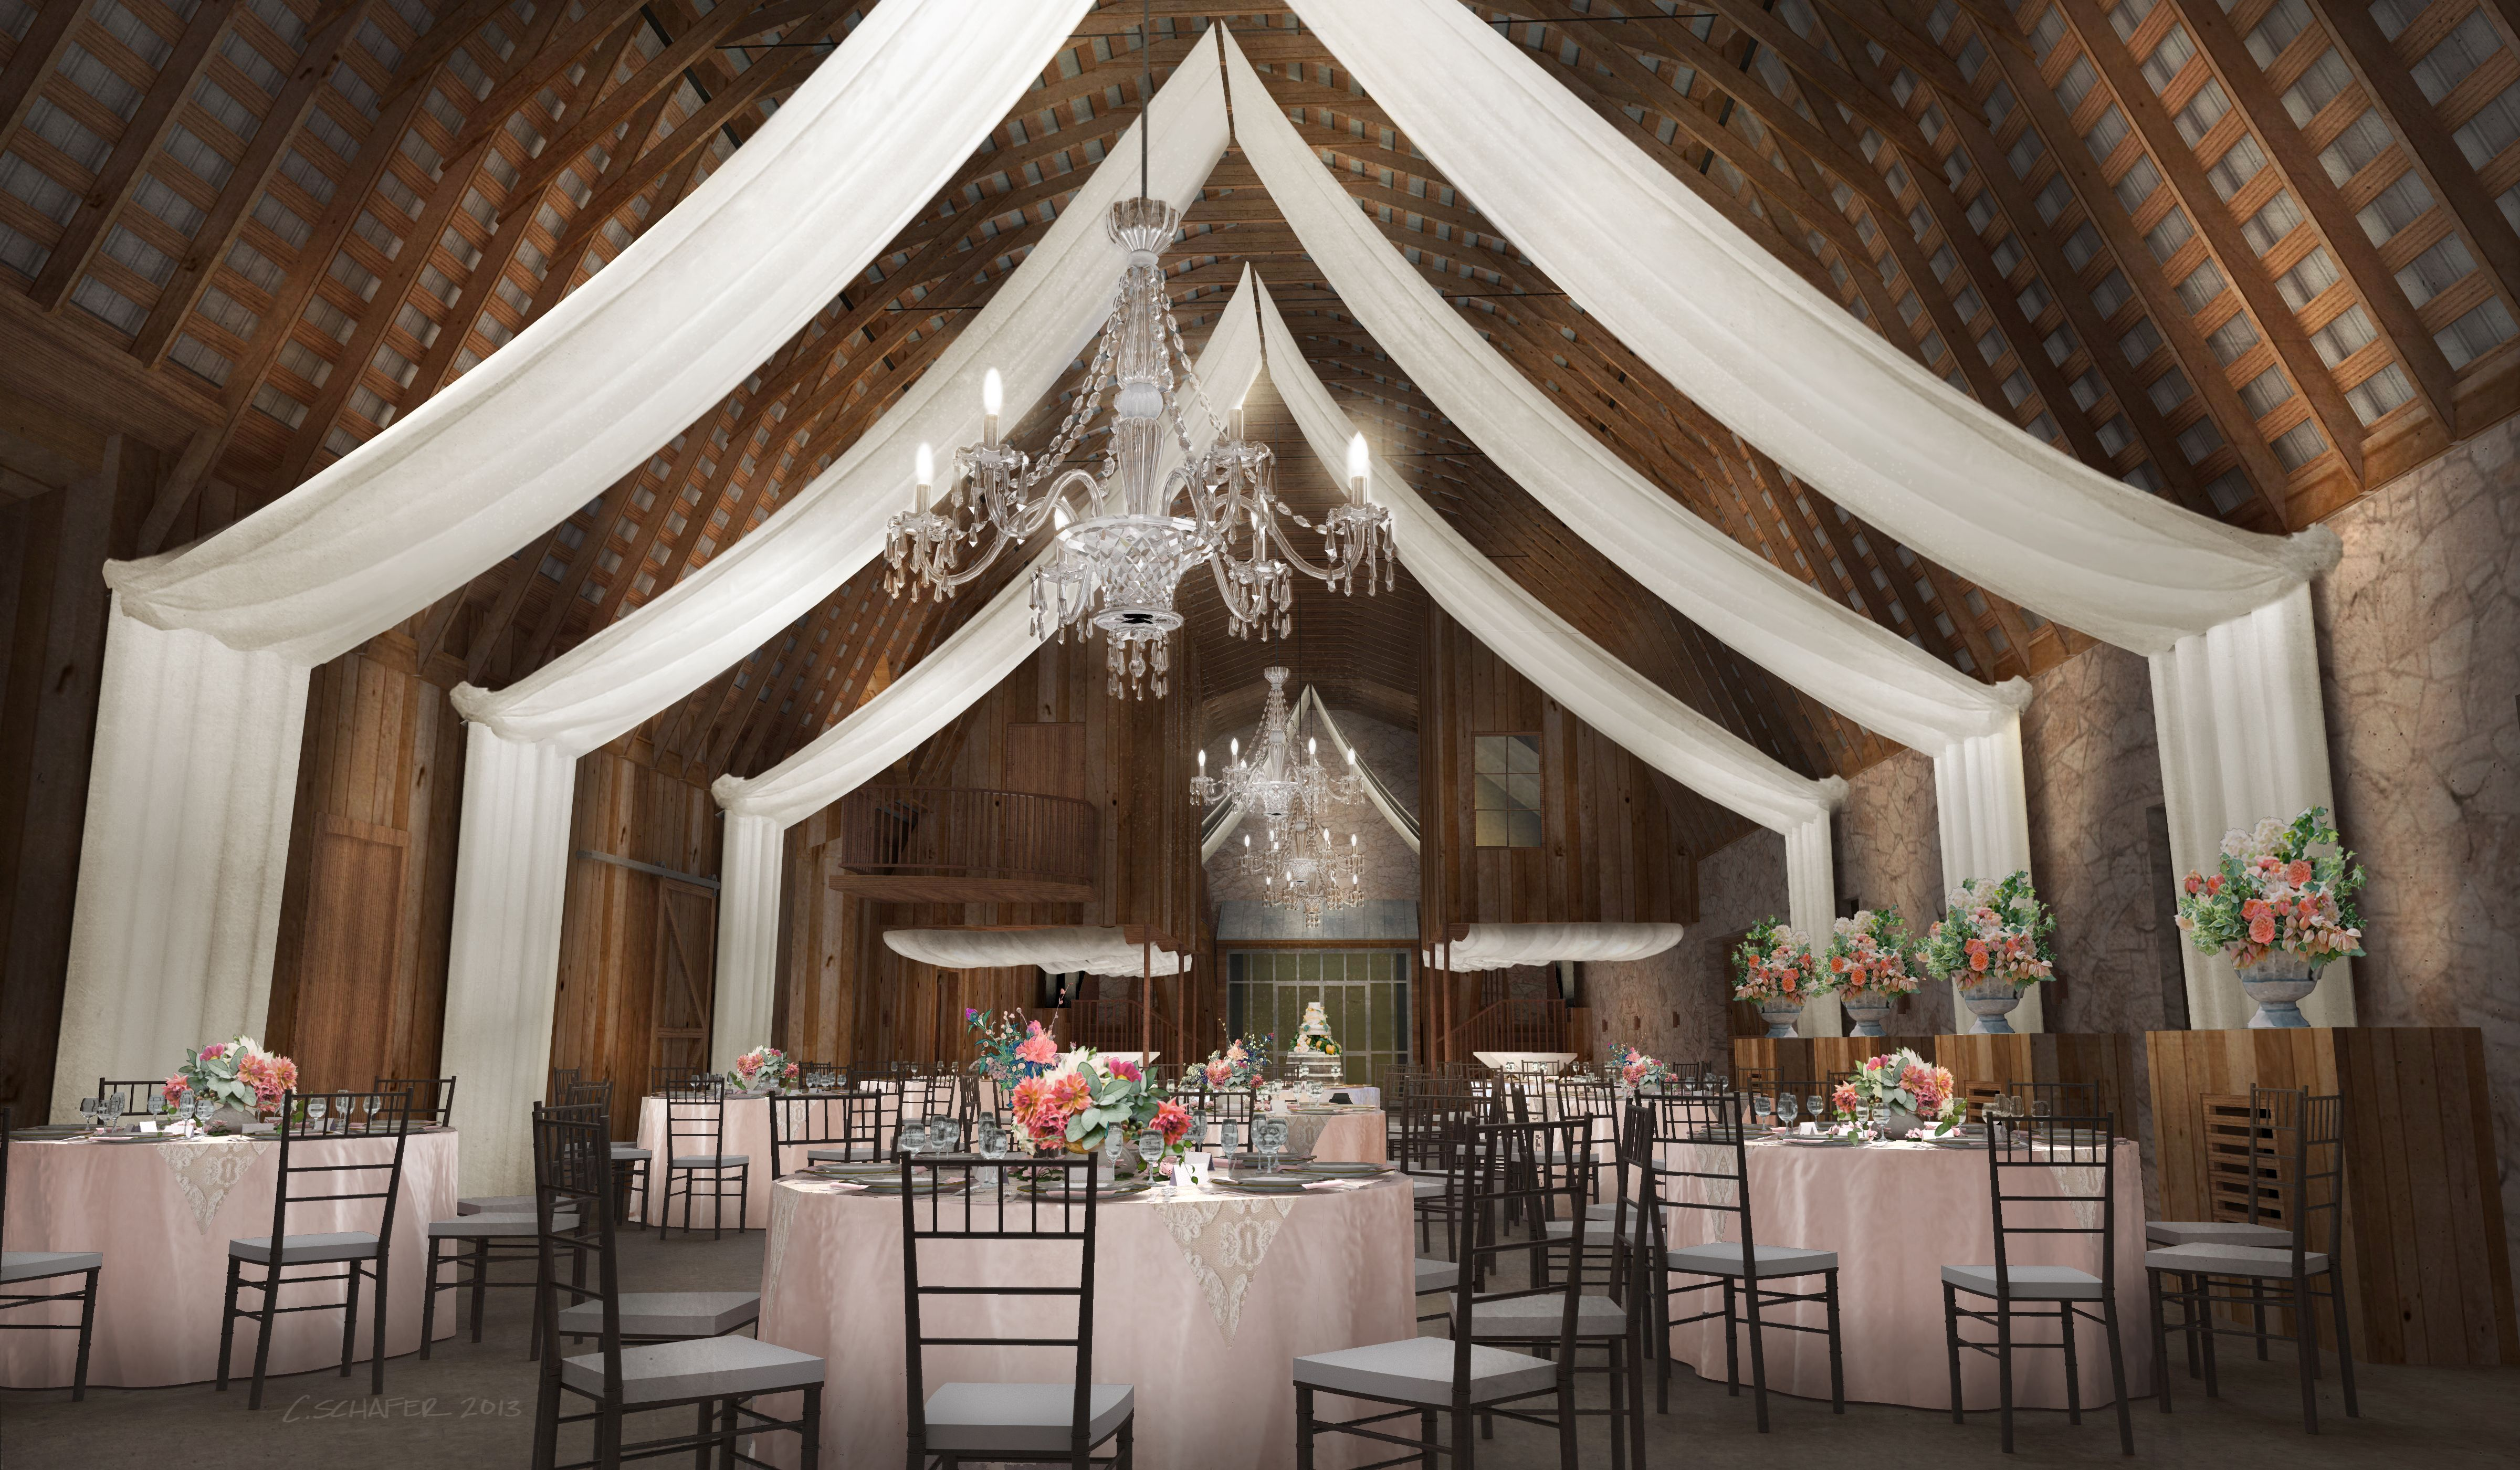 Texas rustic bride barn wedding venues farm wedding venues texas rustic bride barn wedding venues farm wedding venues junglespirit Choice Image